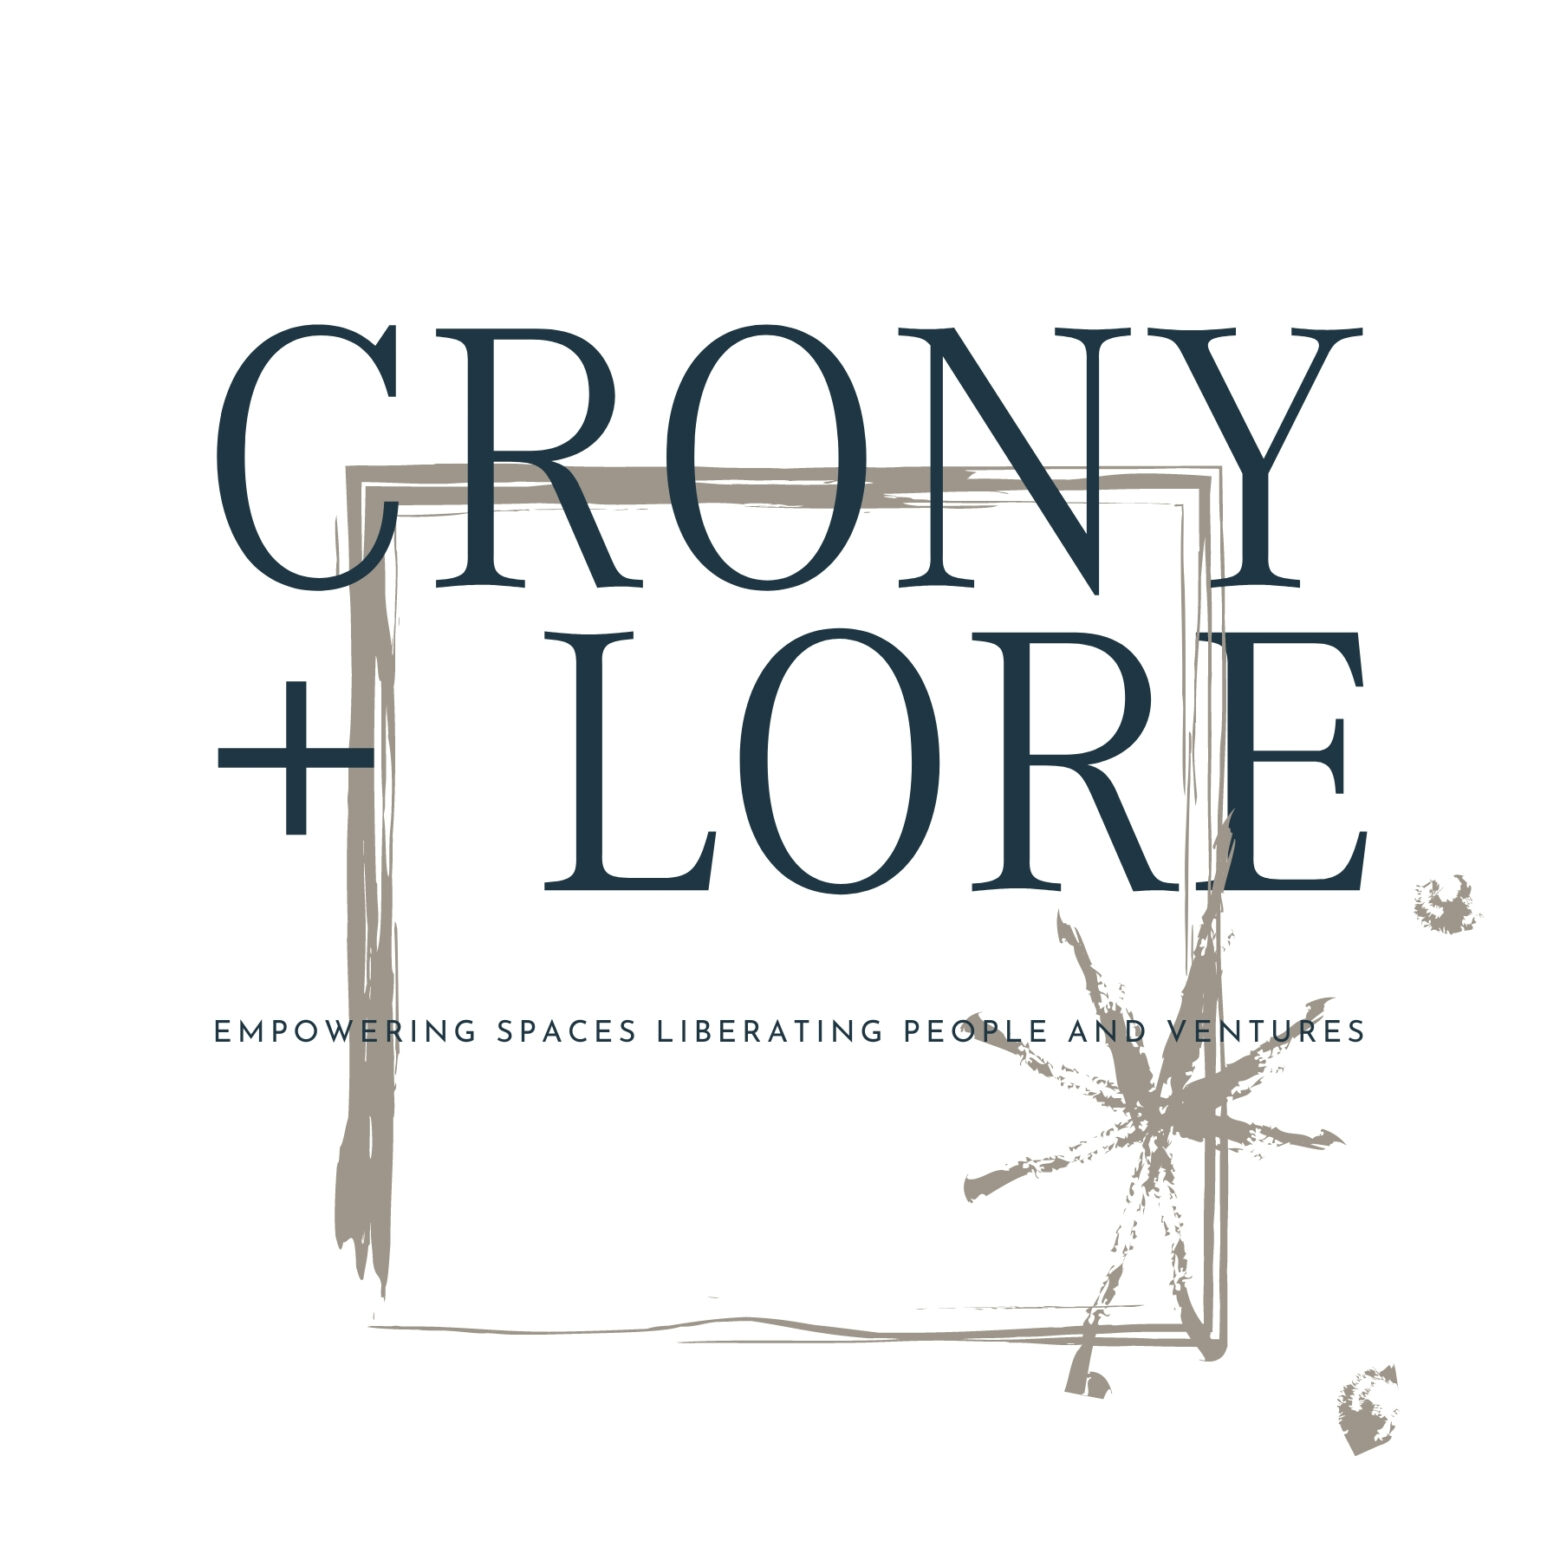 ★ Crony+Lore ★ Empowering Spaces ★ Liberating People and Ventures ★